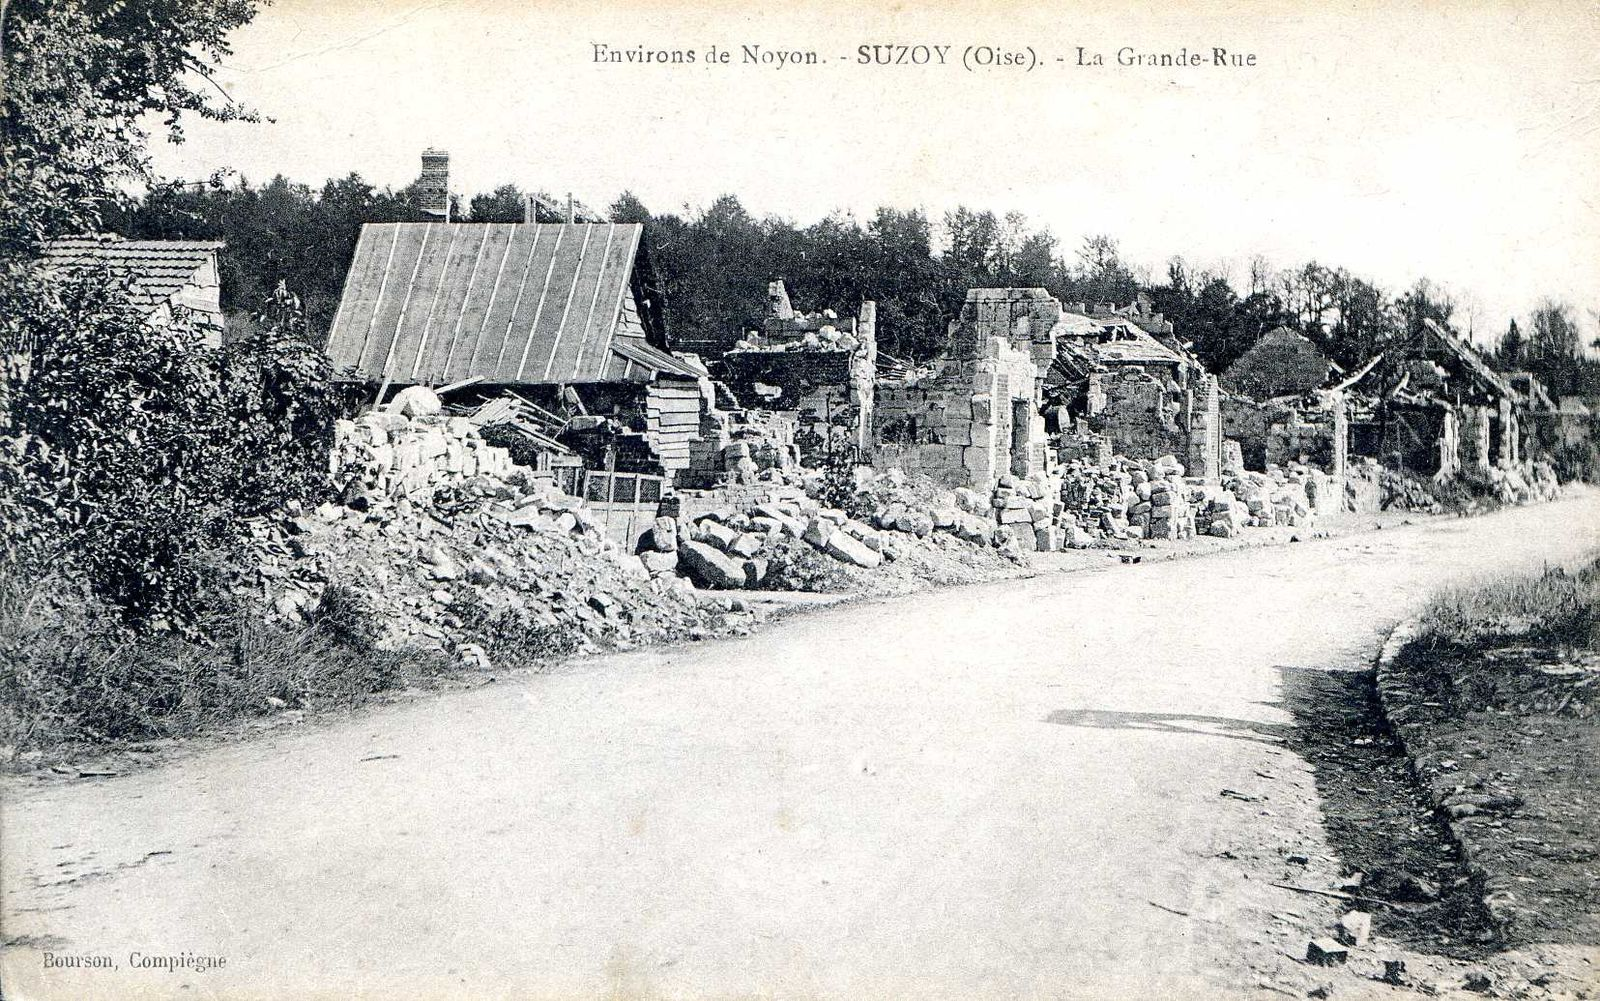 Album - le village de Suzoy (Oise), les destructions de la Guerre